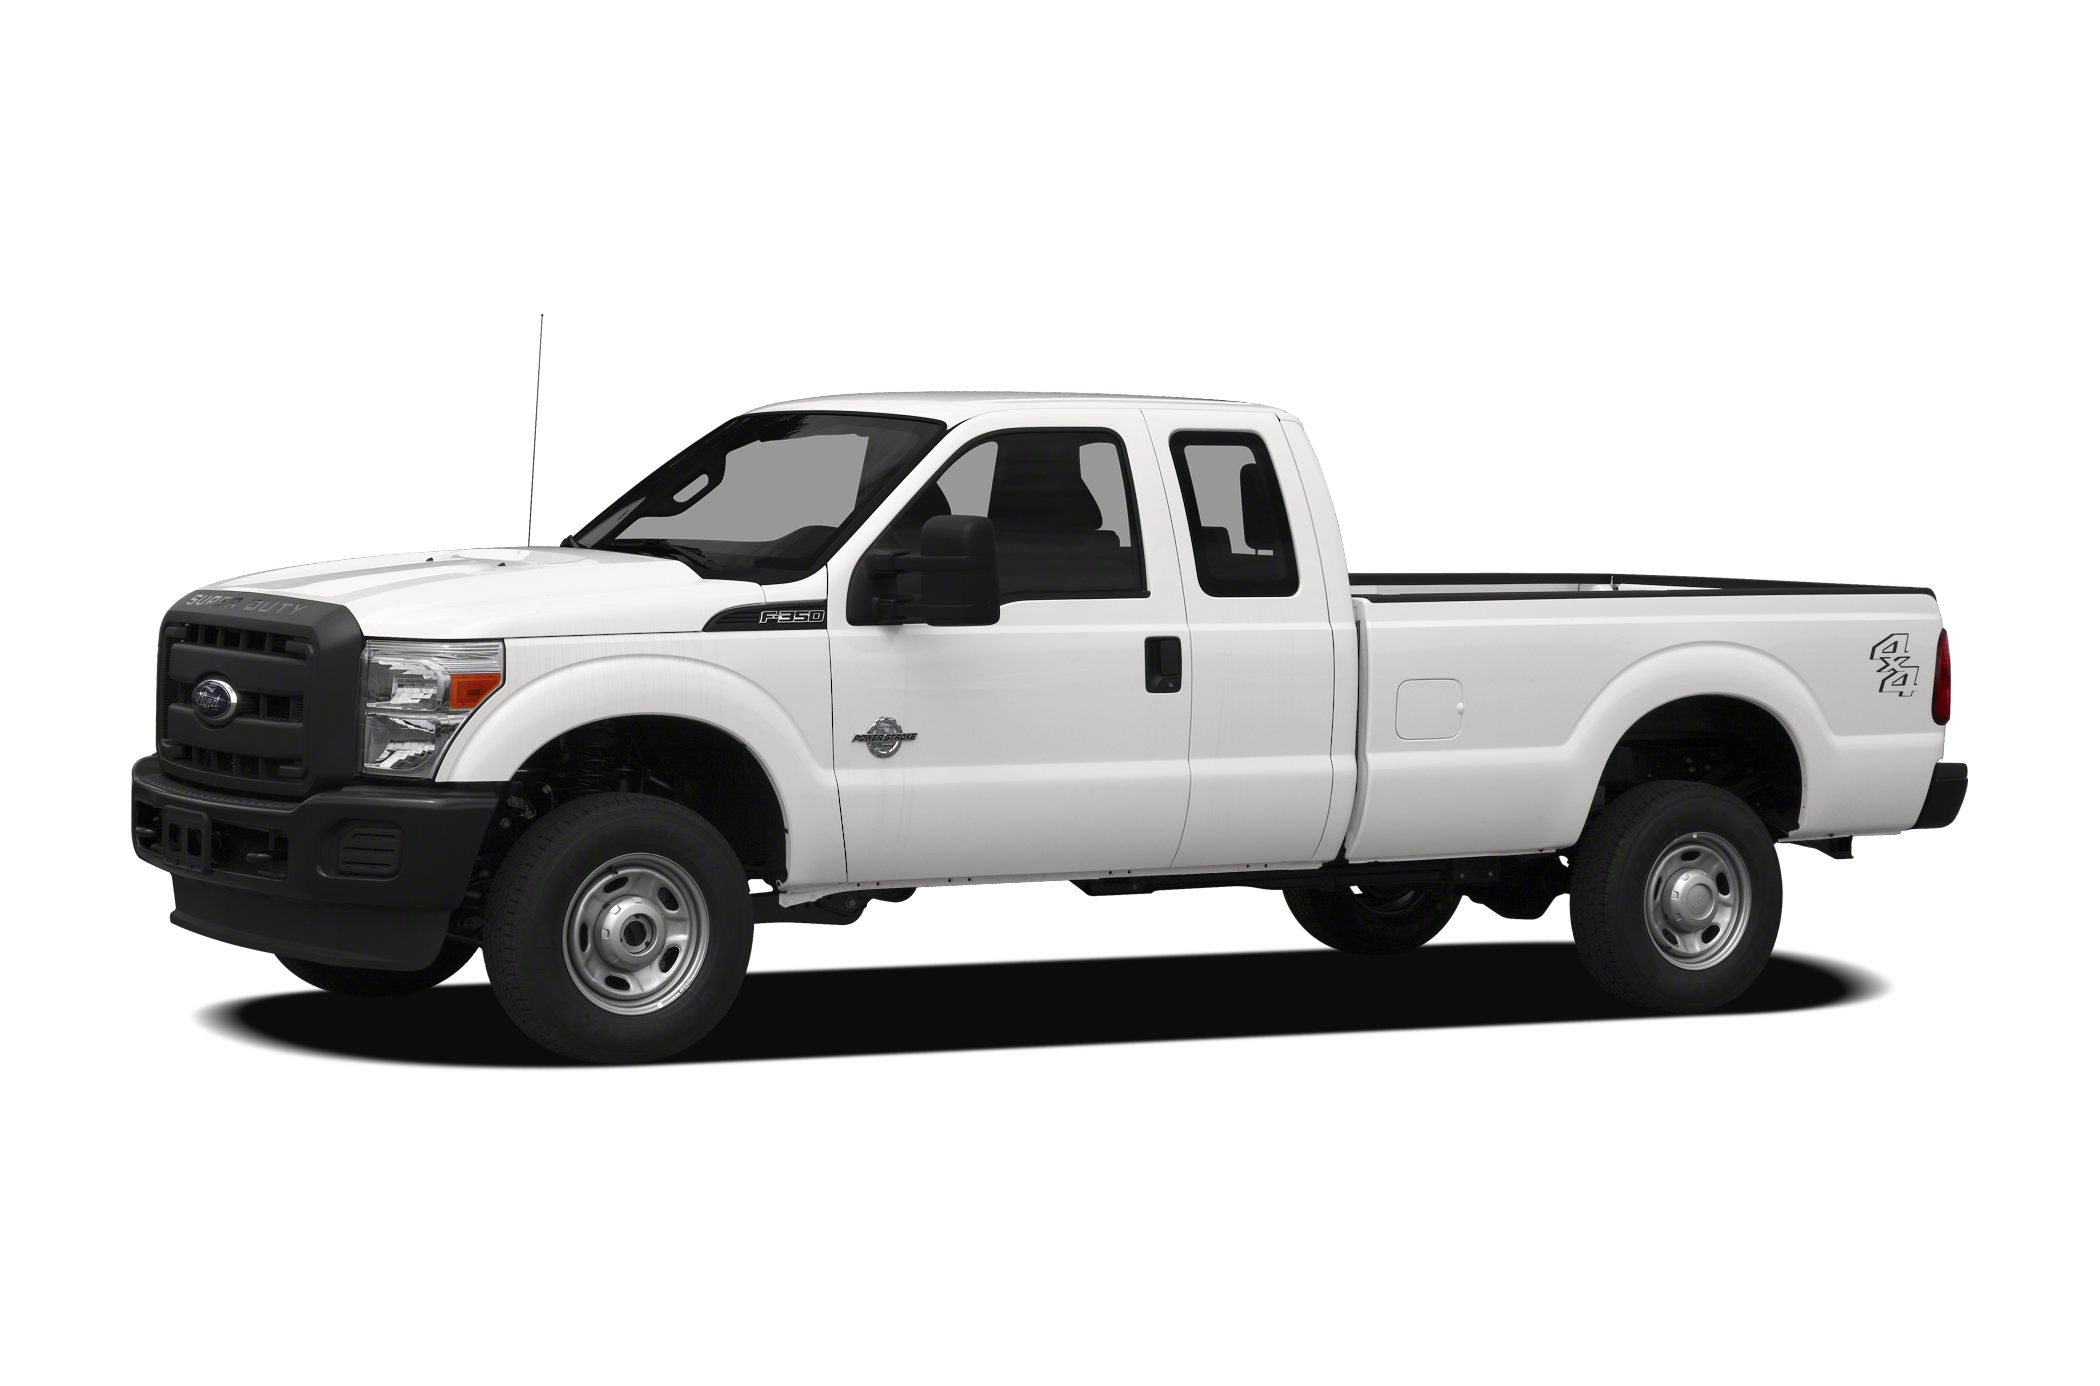 2012 Ford F350 Lariat Crew Cab Pickup for sale in Salmon for $42,895 with 38,125 miles.